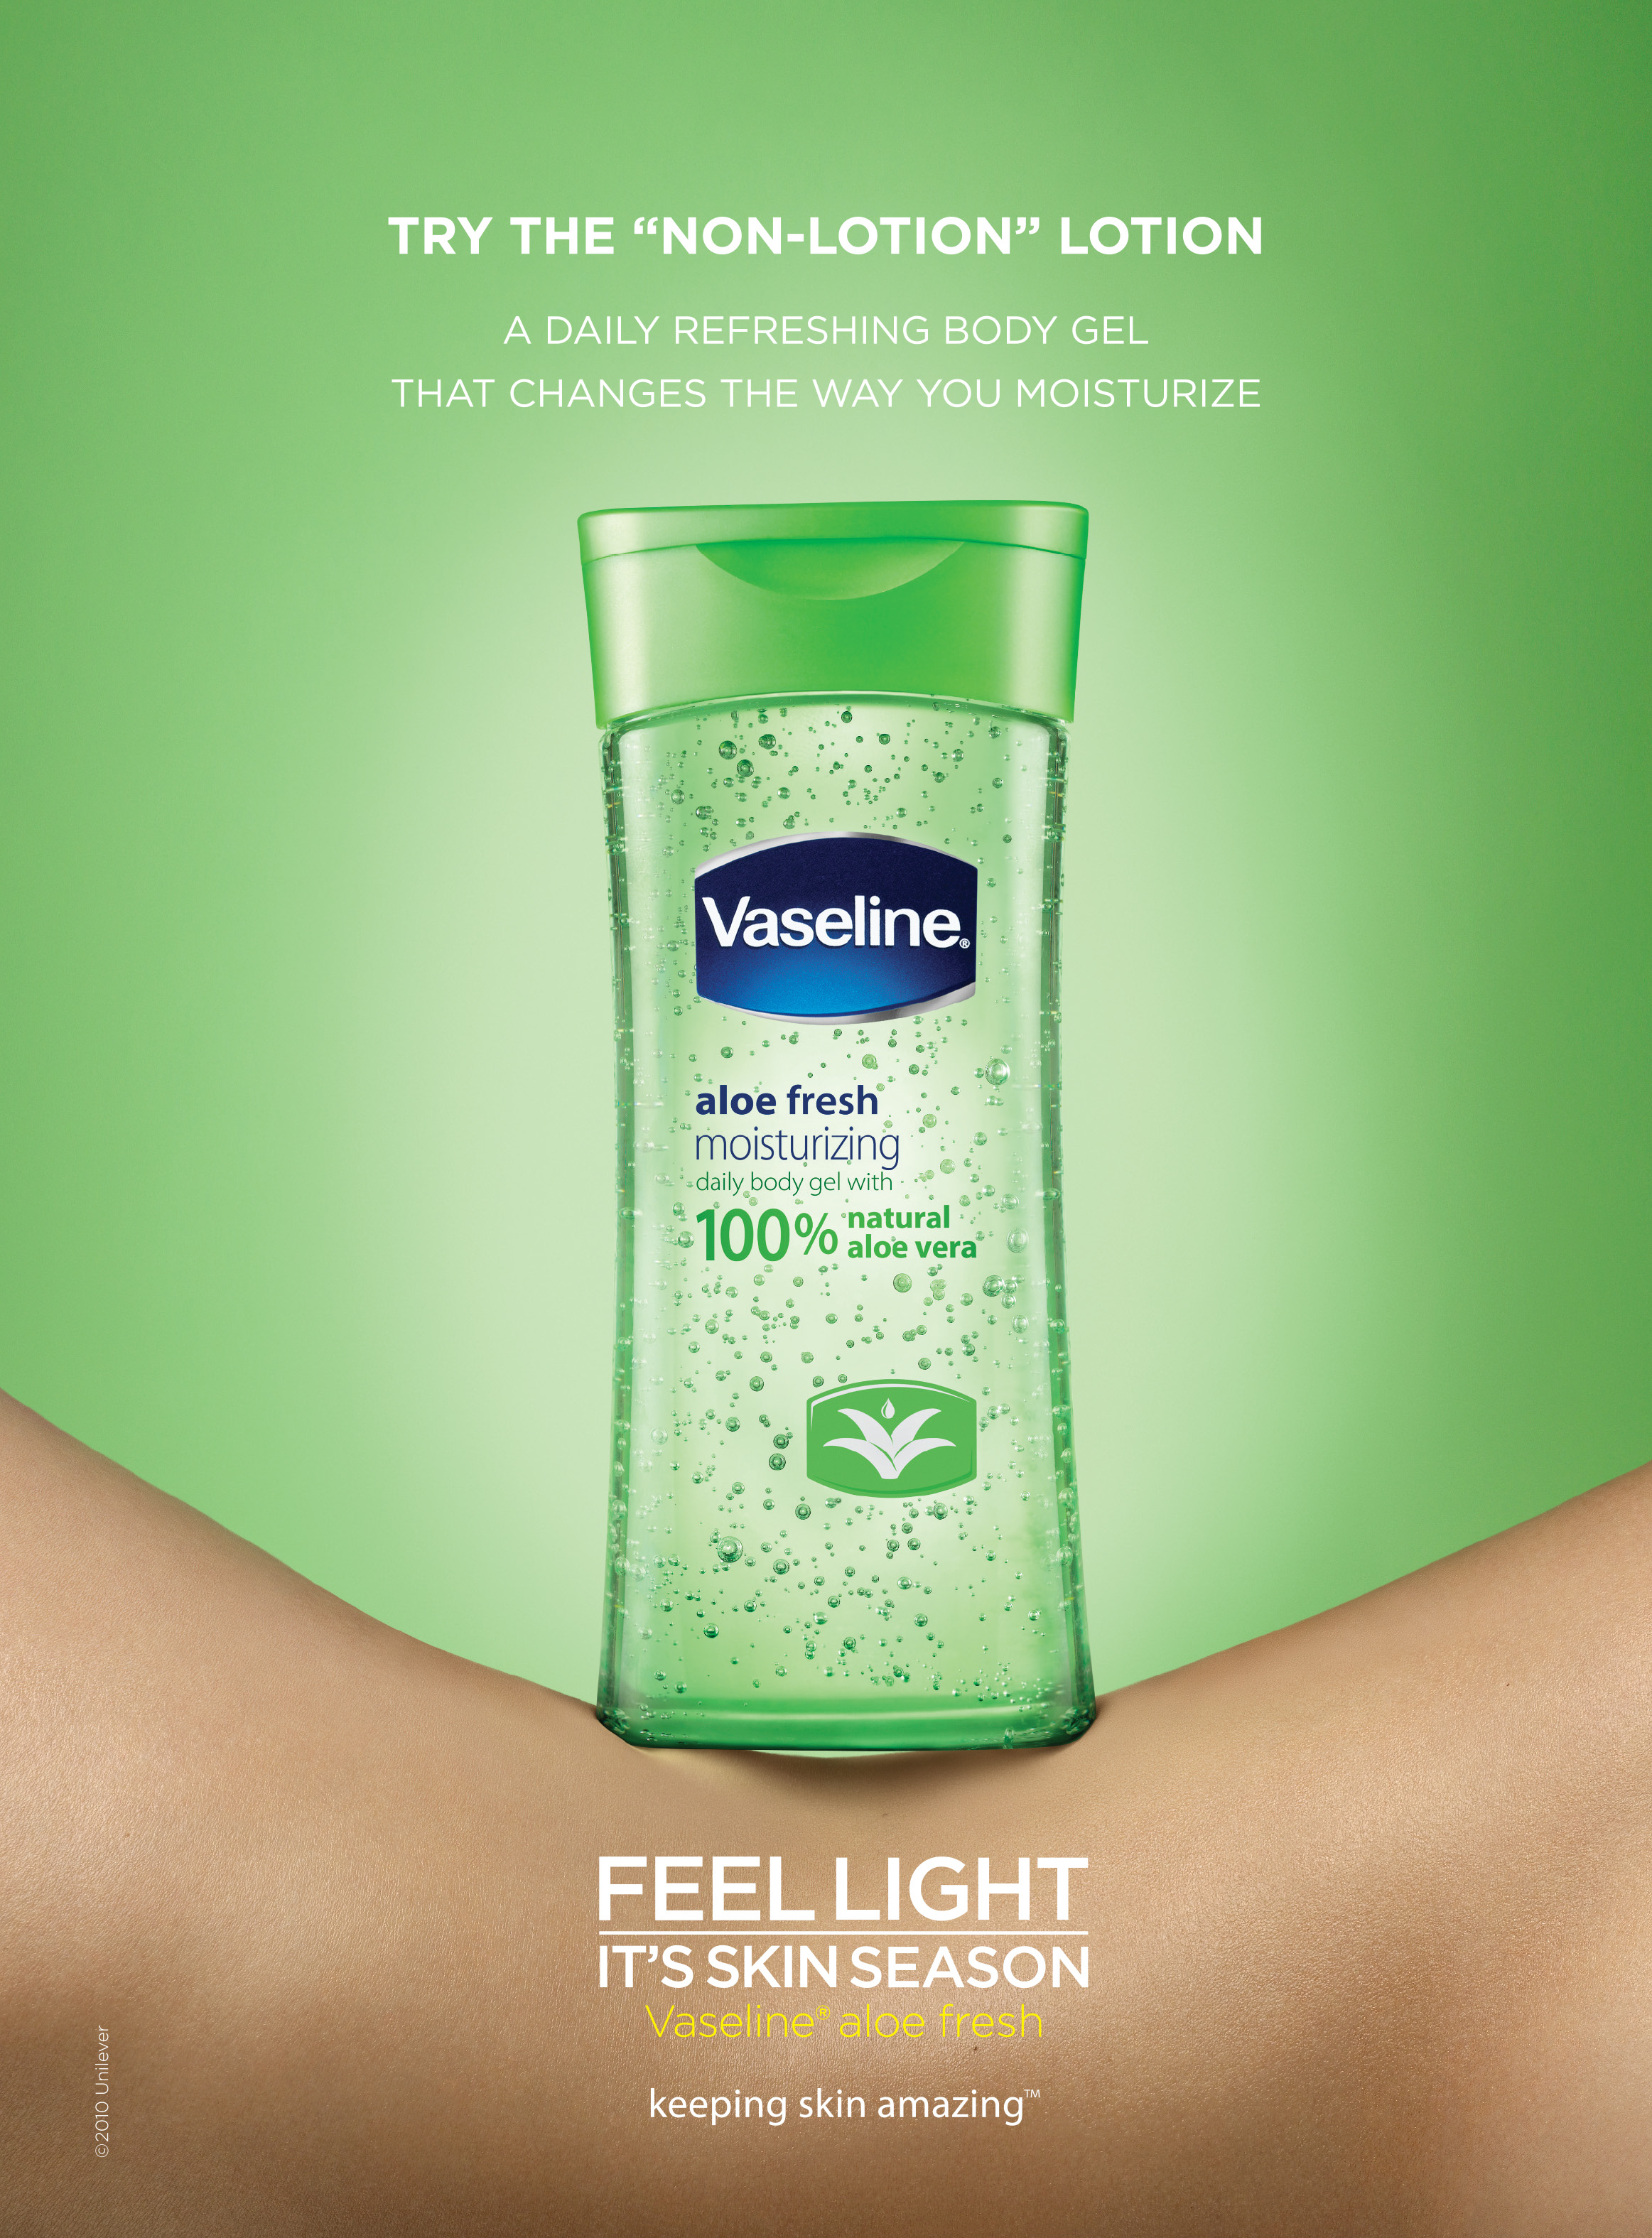 Vaseline :: Aloe - It's Skin Season